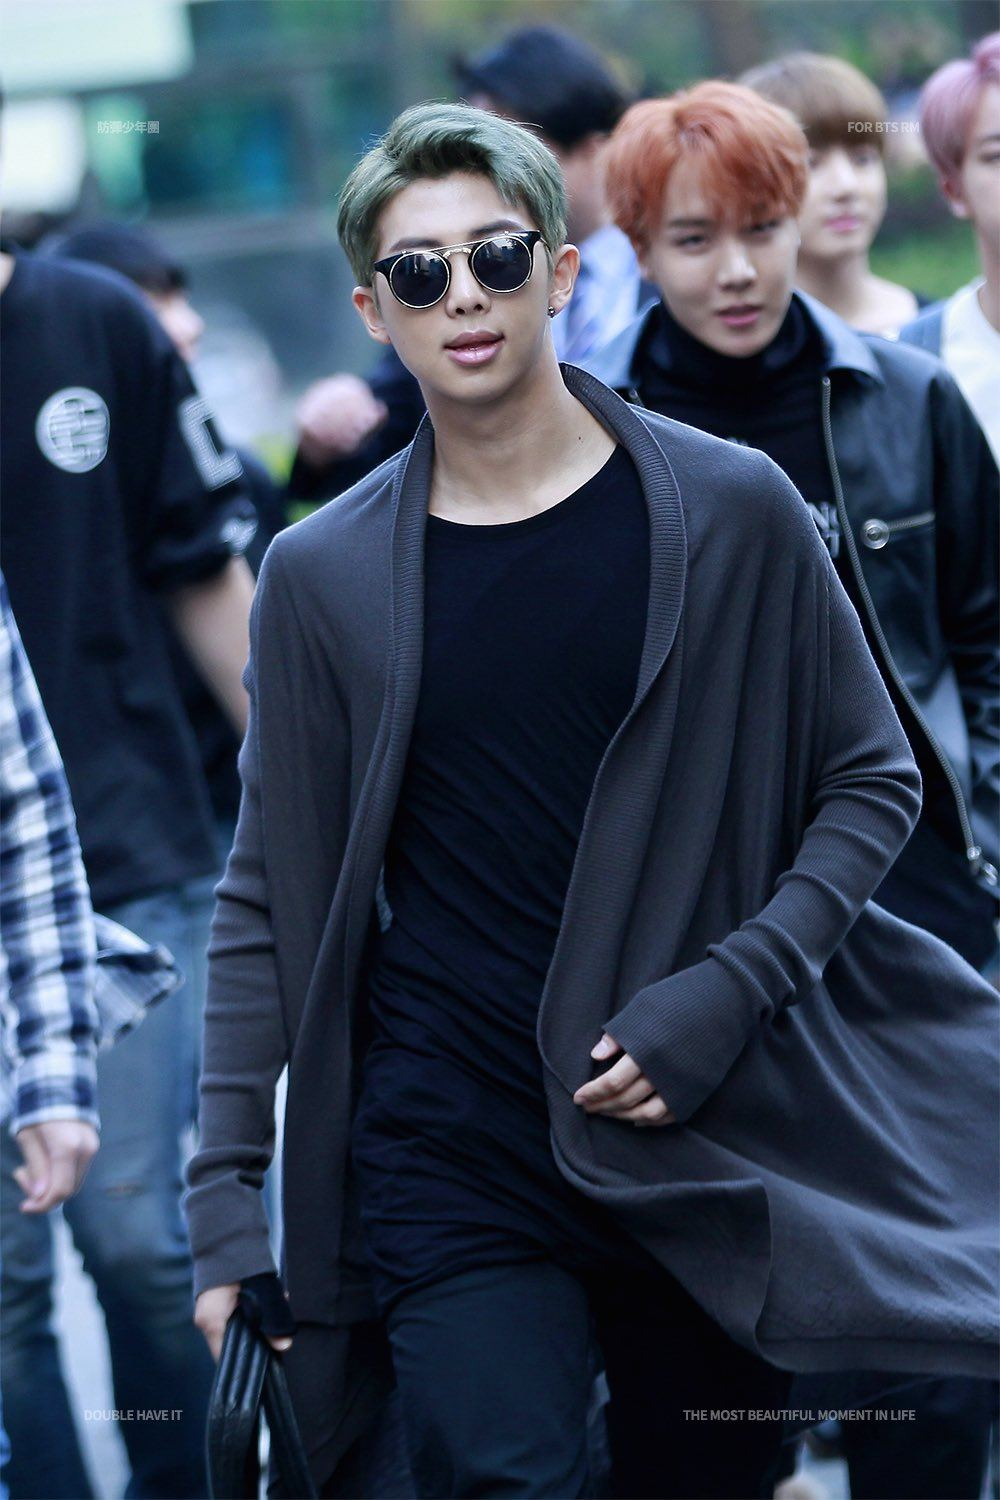 Rap Monster showing off some of that swag that that landed him a spot in BTS.